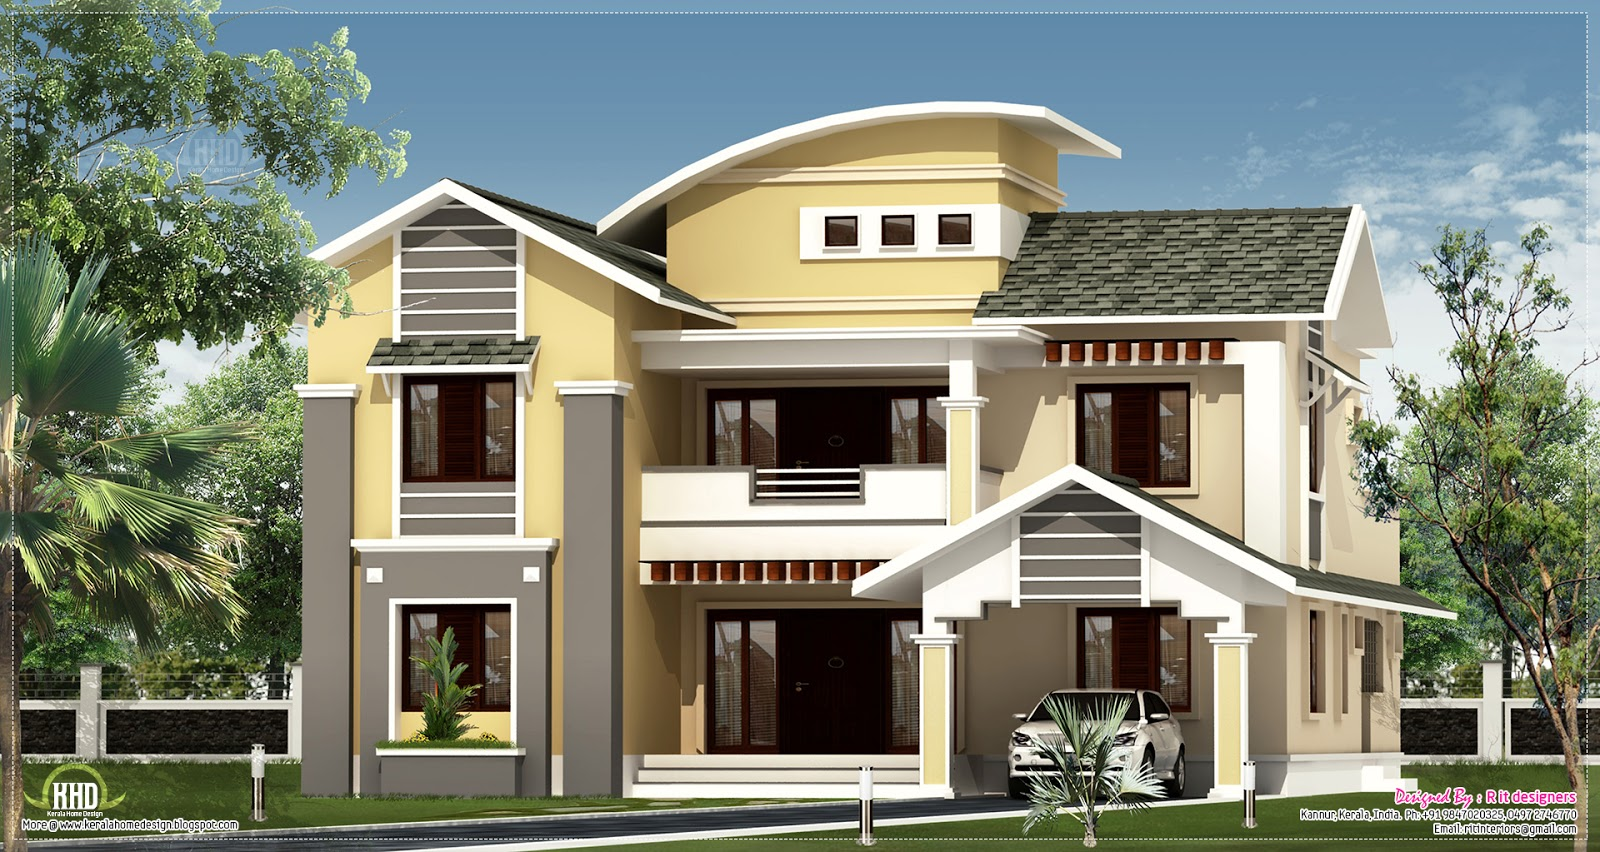 3000 home design from kannur kerala home kerala for 3000 sq ft house plans kerala style